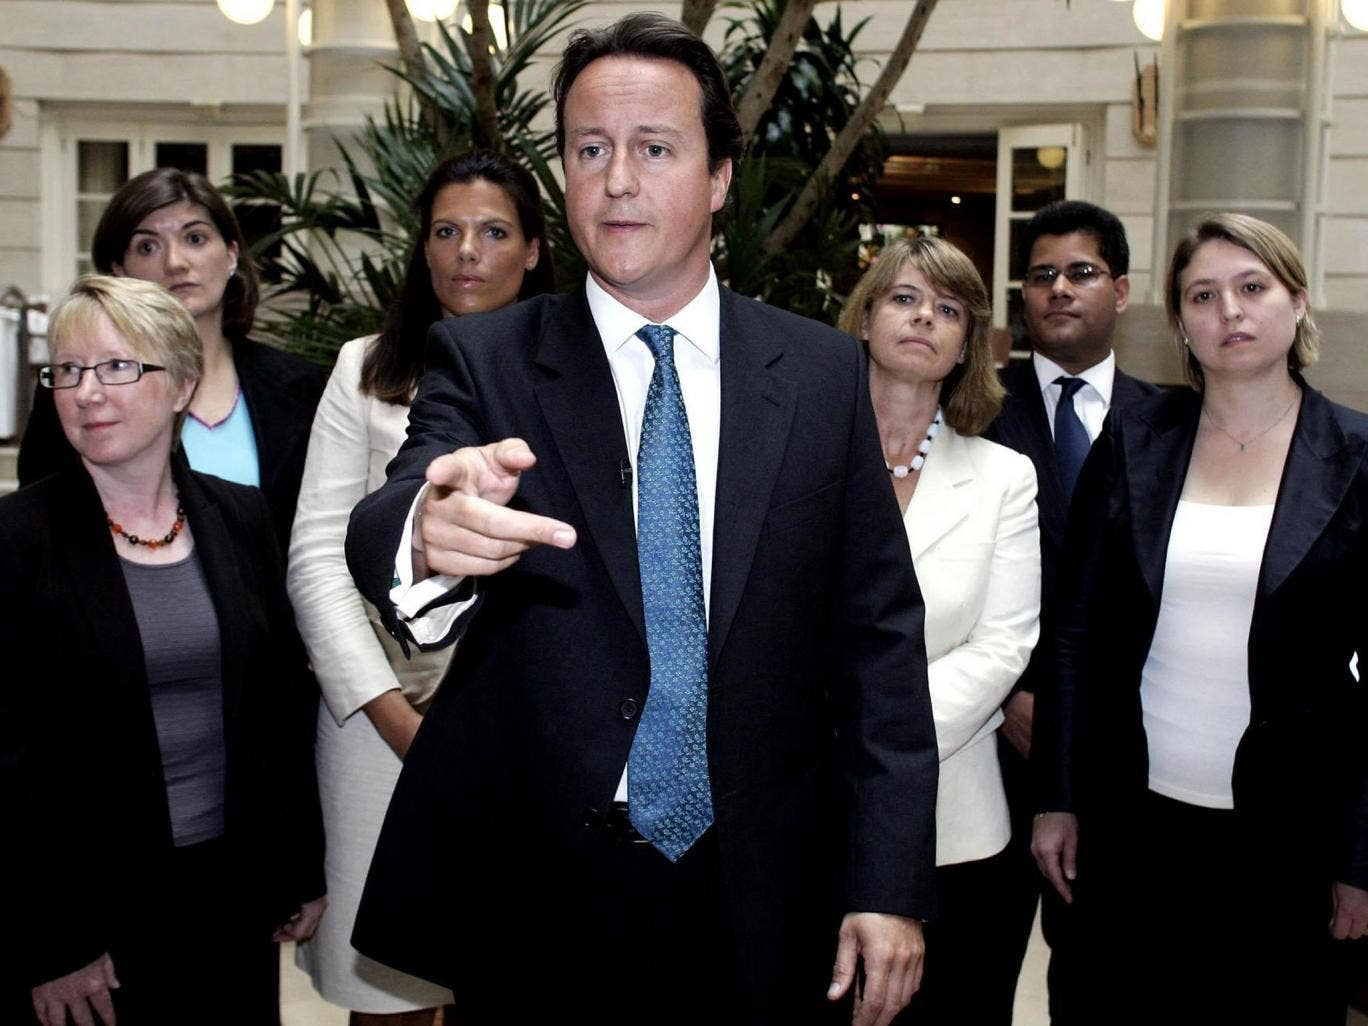 David Cameron in 2006, with candidates for the 2010 election, announcing a drive for more women to be selected